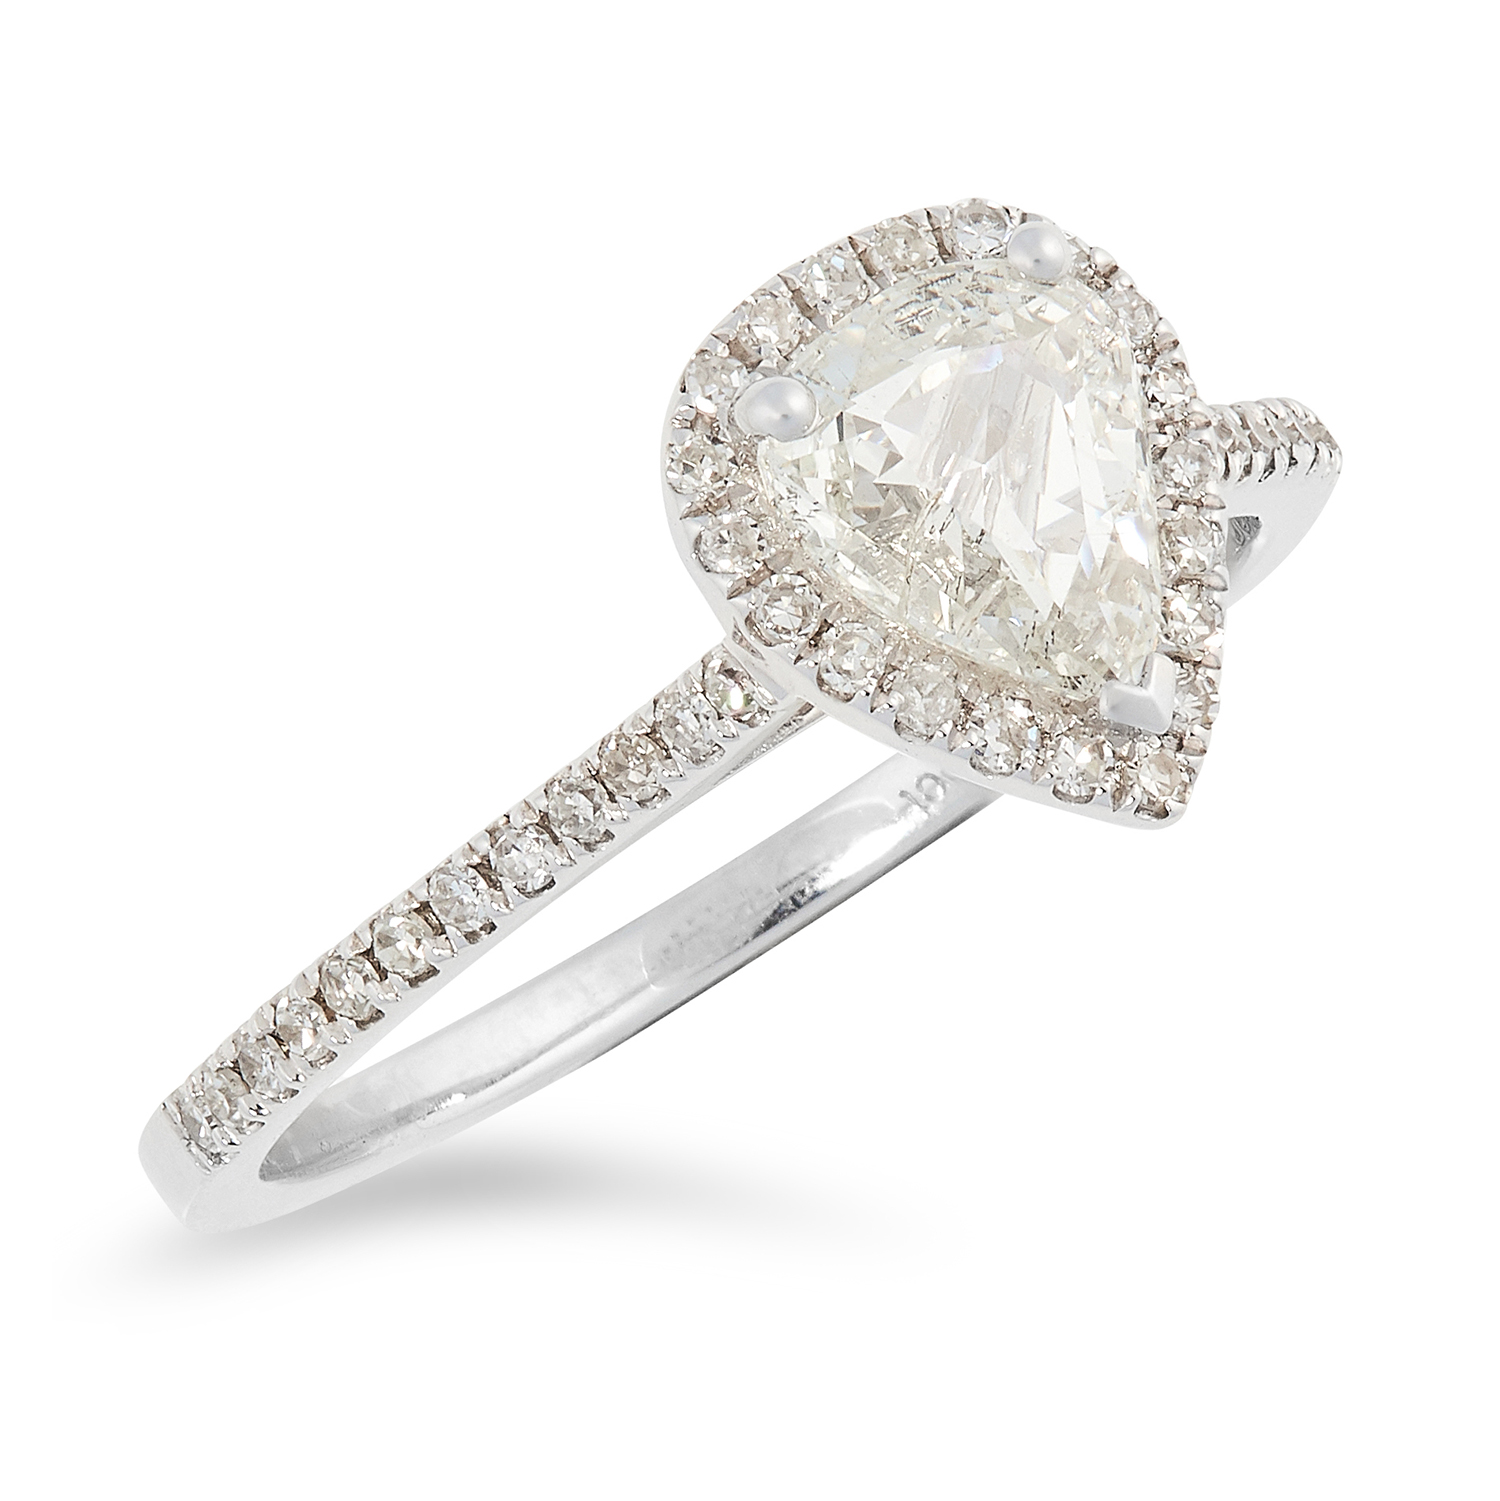 A DIAMOND SOLITAIRE RING, TRESOR PARIS set with a pear fancy cut diamond of 0.67 carats in a halo of - Image 3 of 3